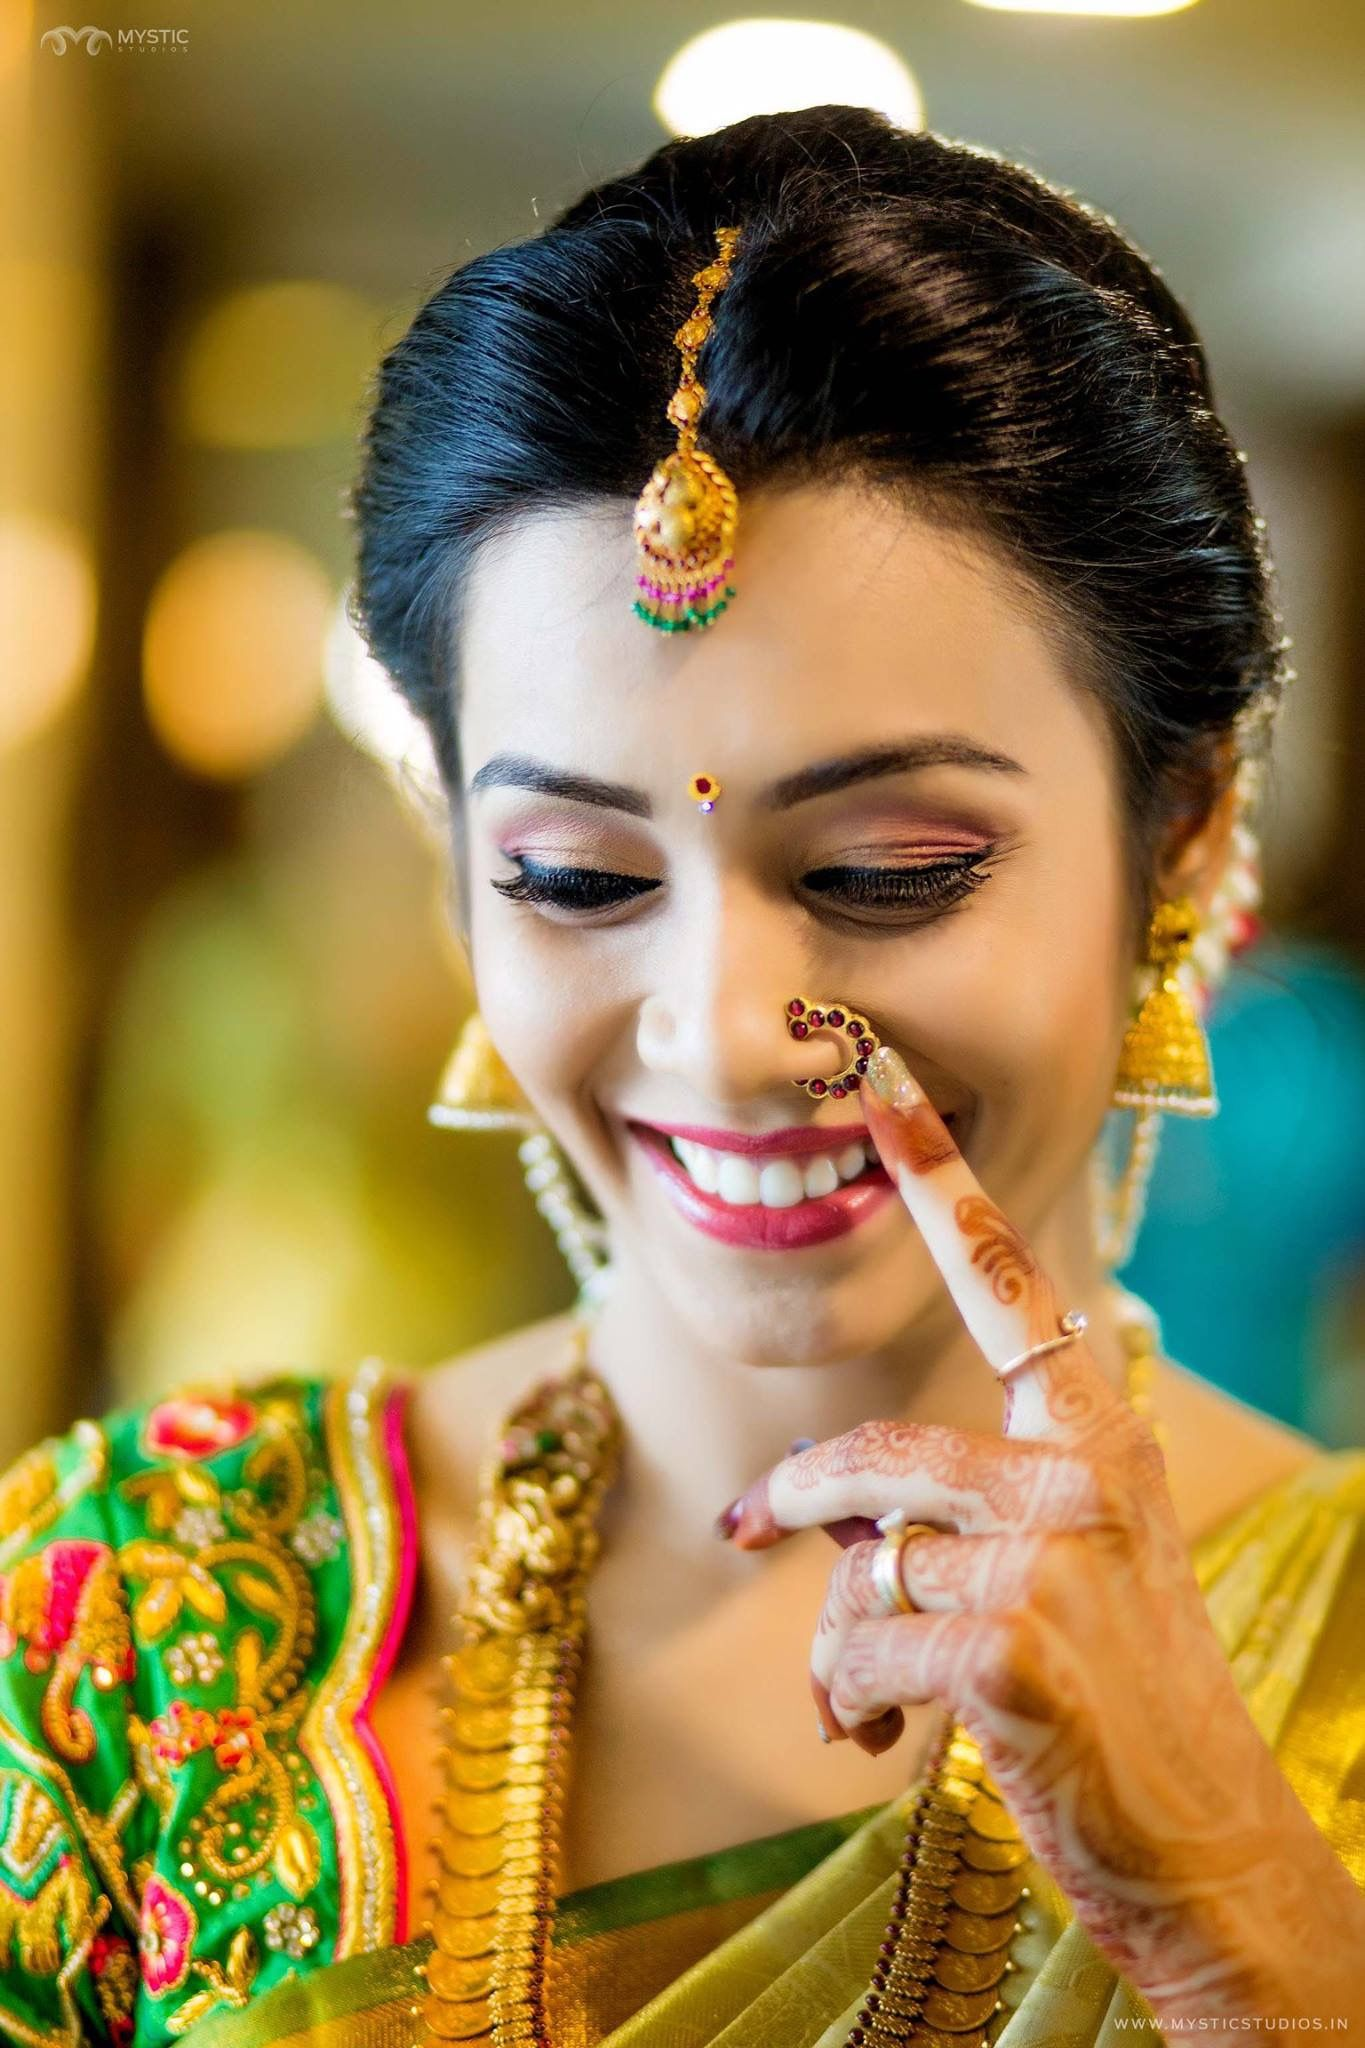 About nath nose ring mukku pudaka on pinterest jewellery gold nose - Elegant Saree Wedding Hairdos Bridal Outfits Nose Rings Blouse Patterns Bridal Jewellery Bridal Makeup Silk Sarees Jewellery Designs